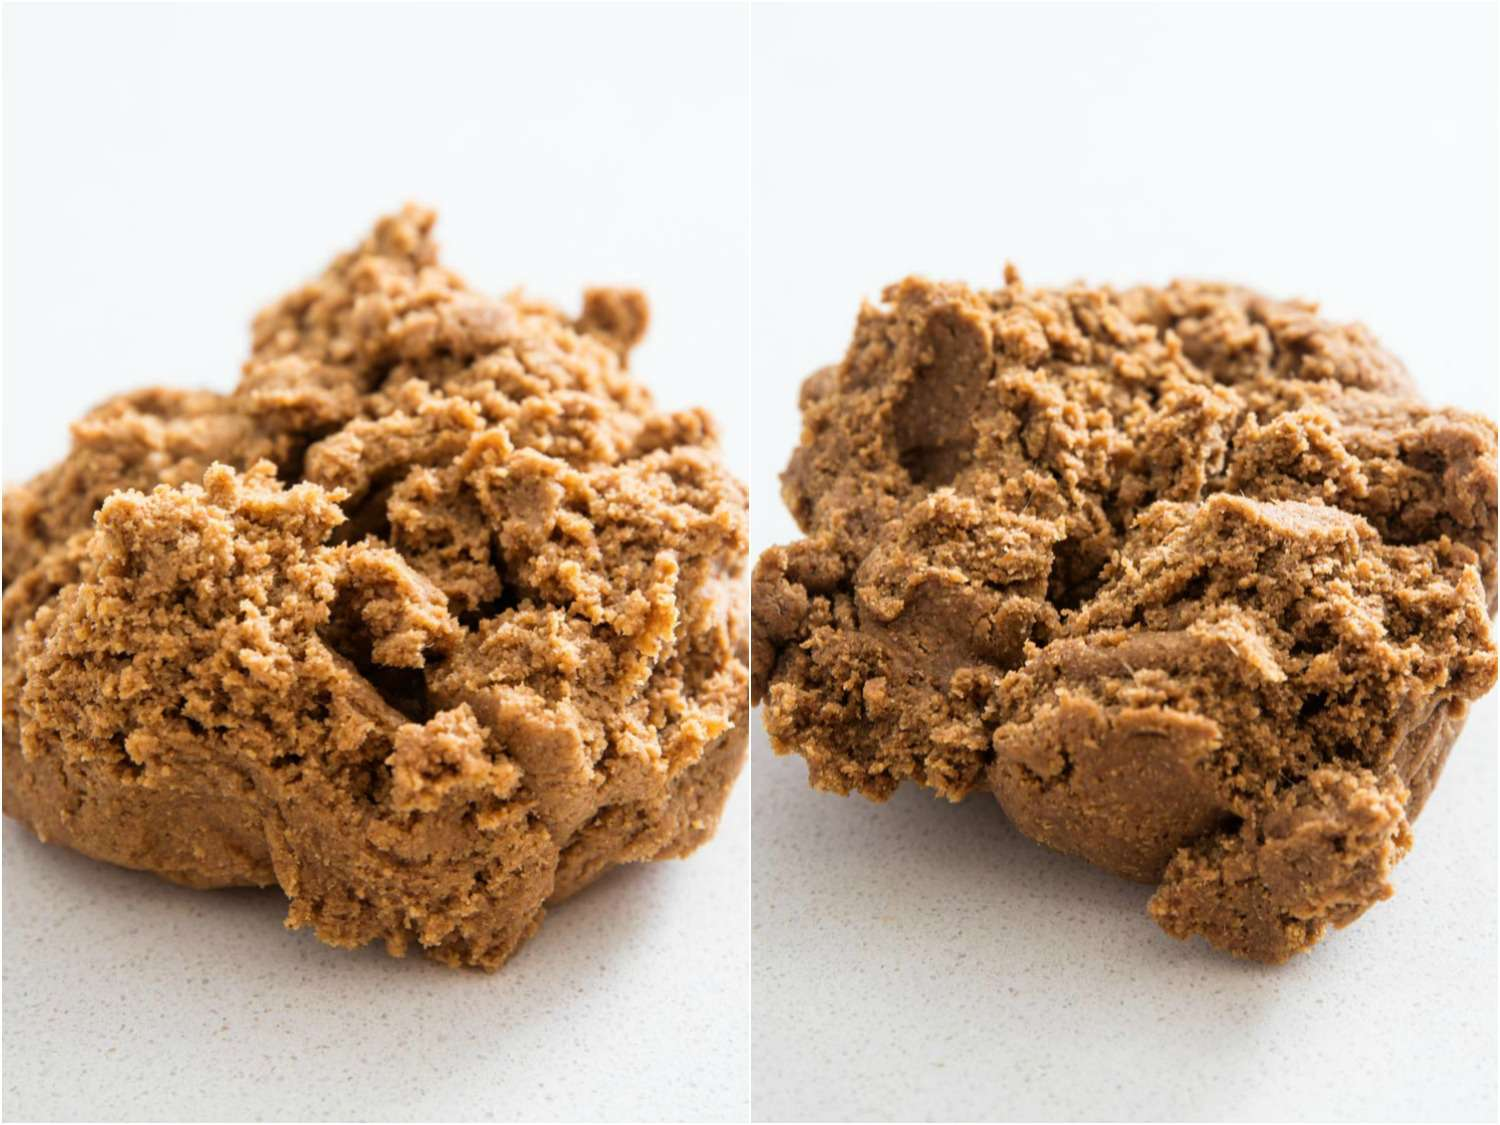 Gingerbread dough made with molasses and darker dough made with blackstrap molasses